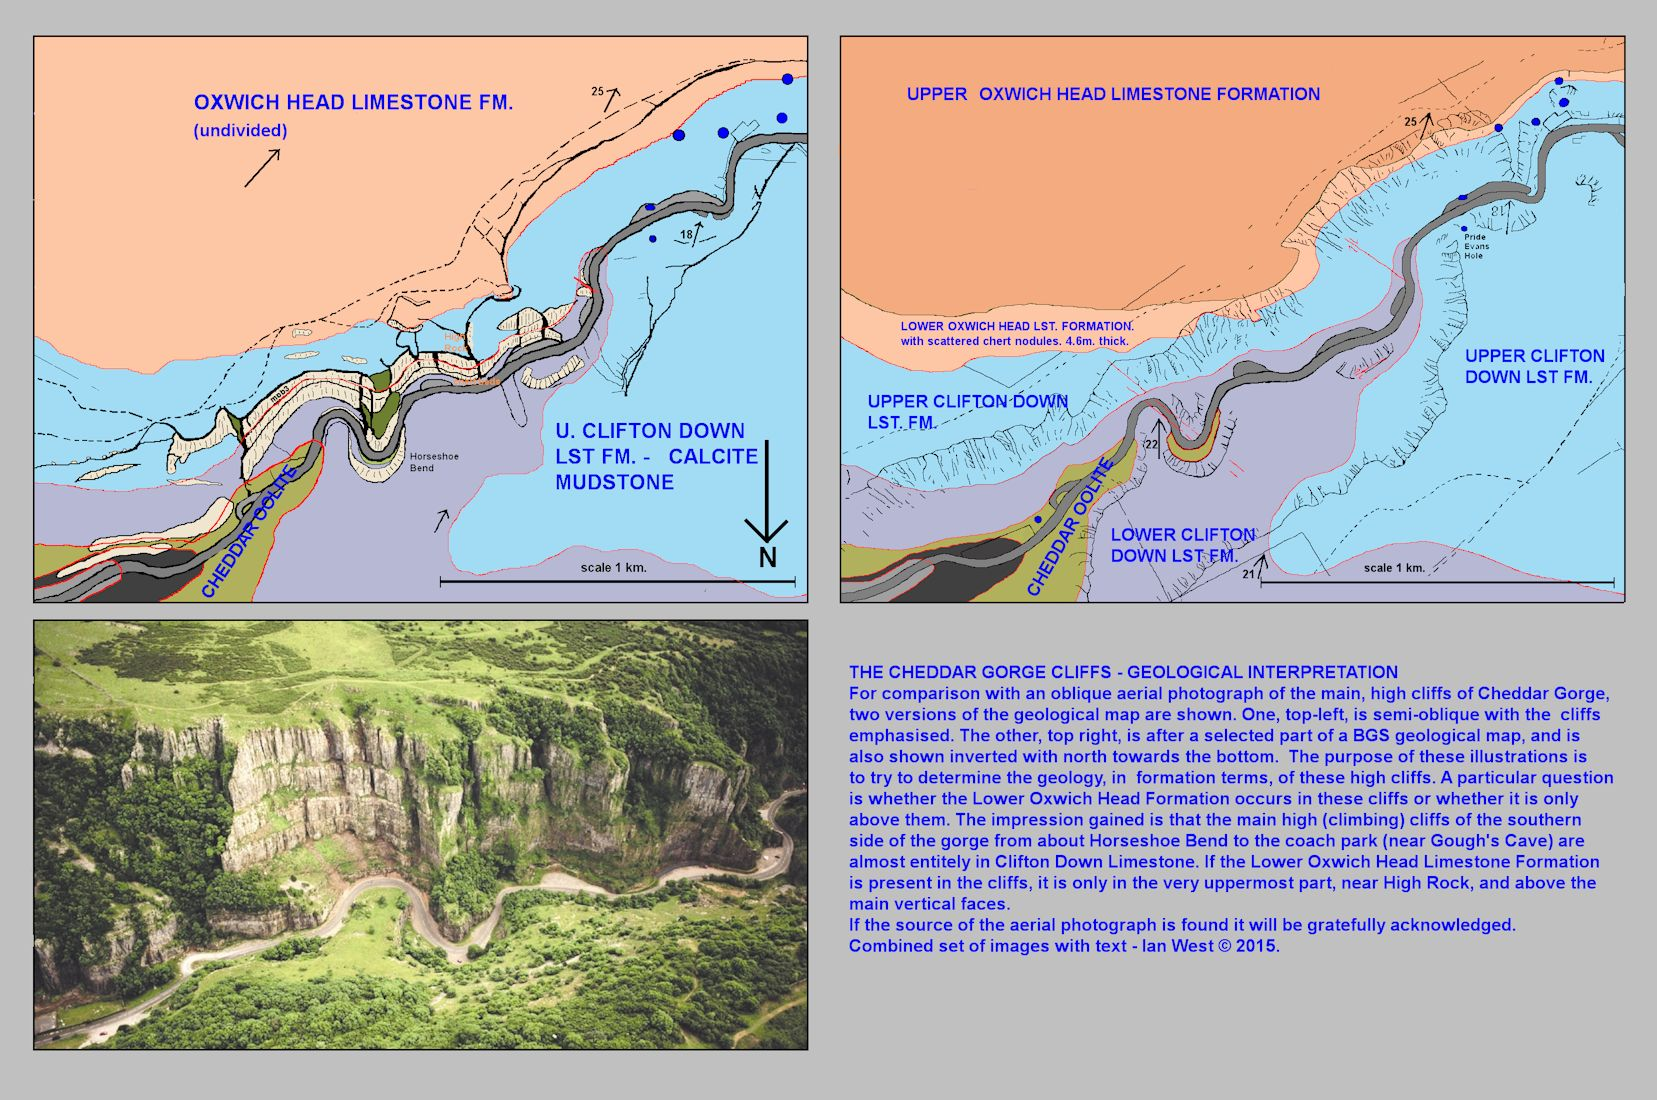 Cheddar Cliffs in lower Cheddar Gorge with diagrams relating topographic features and geological outcrops, Mendip Hills, Somerset